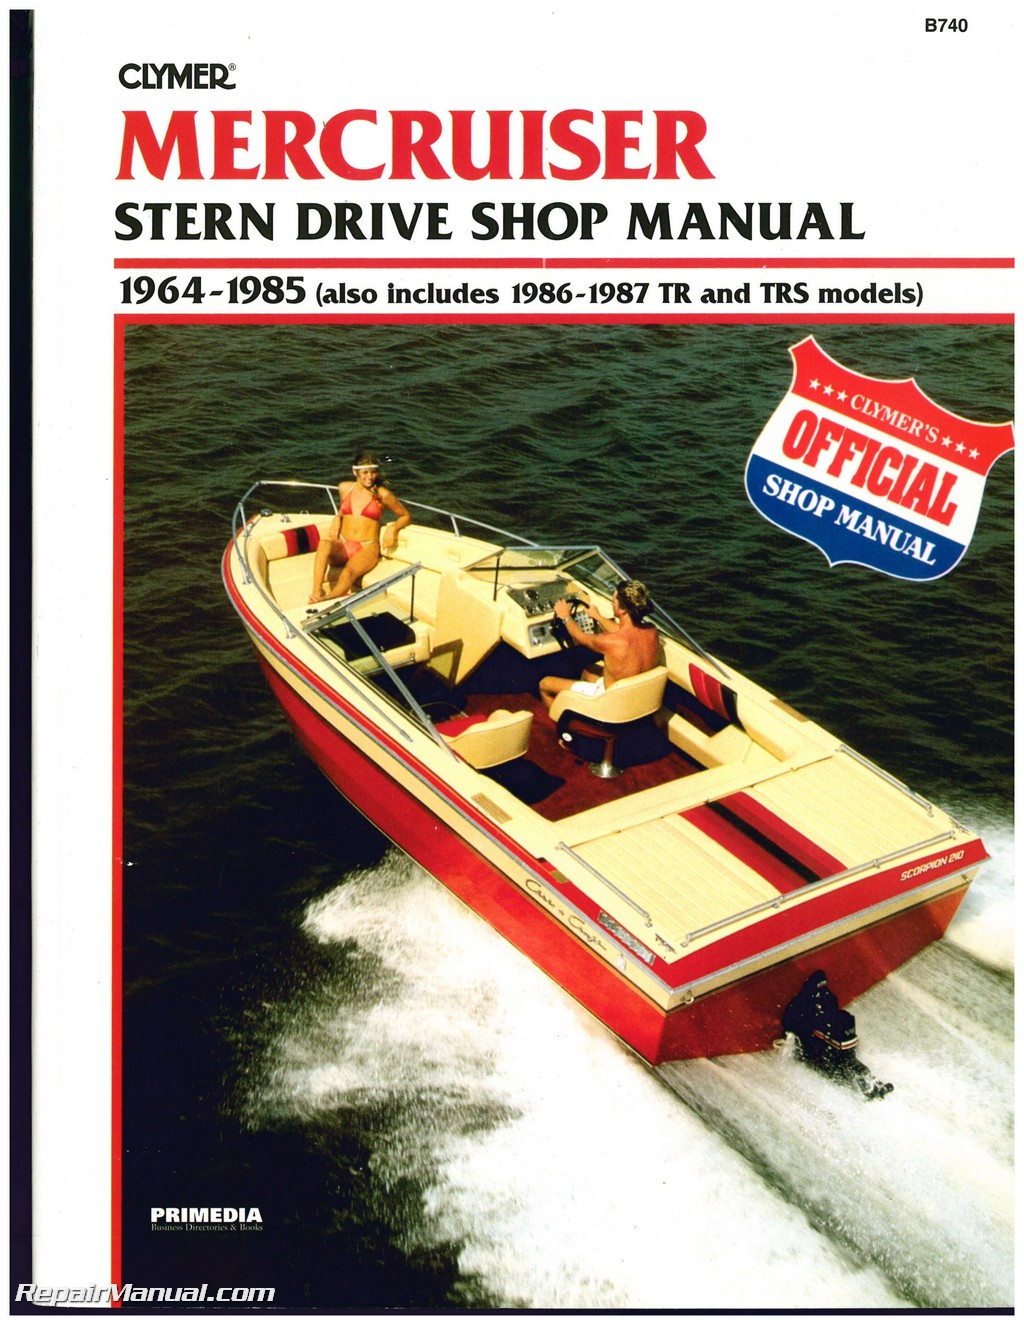 Mercruiser stern drive boat engine shop manual 1964 1987 for Boat motor repair shops